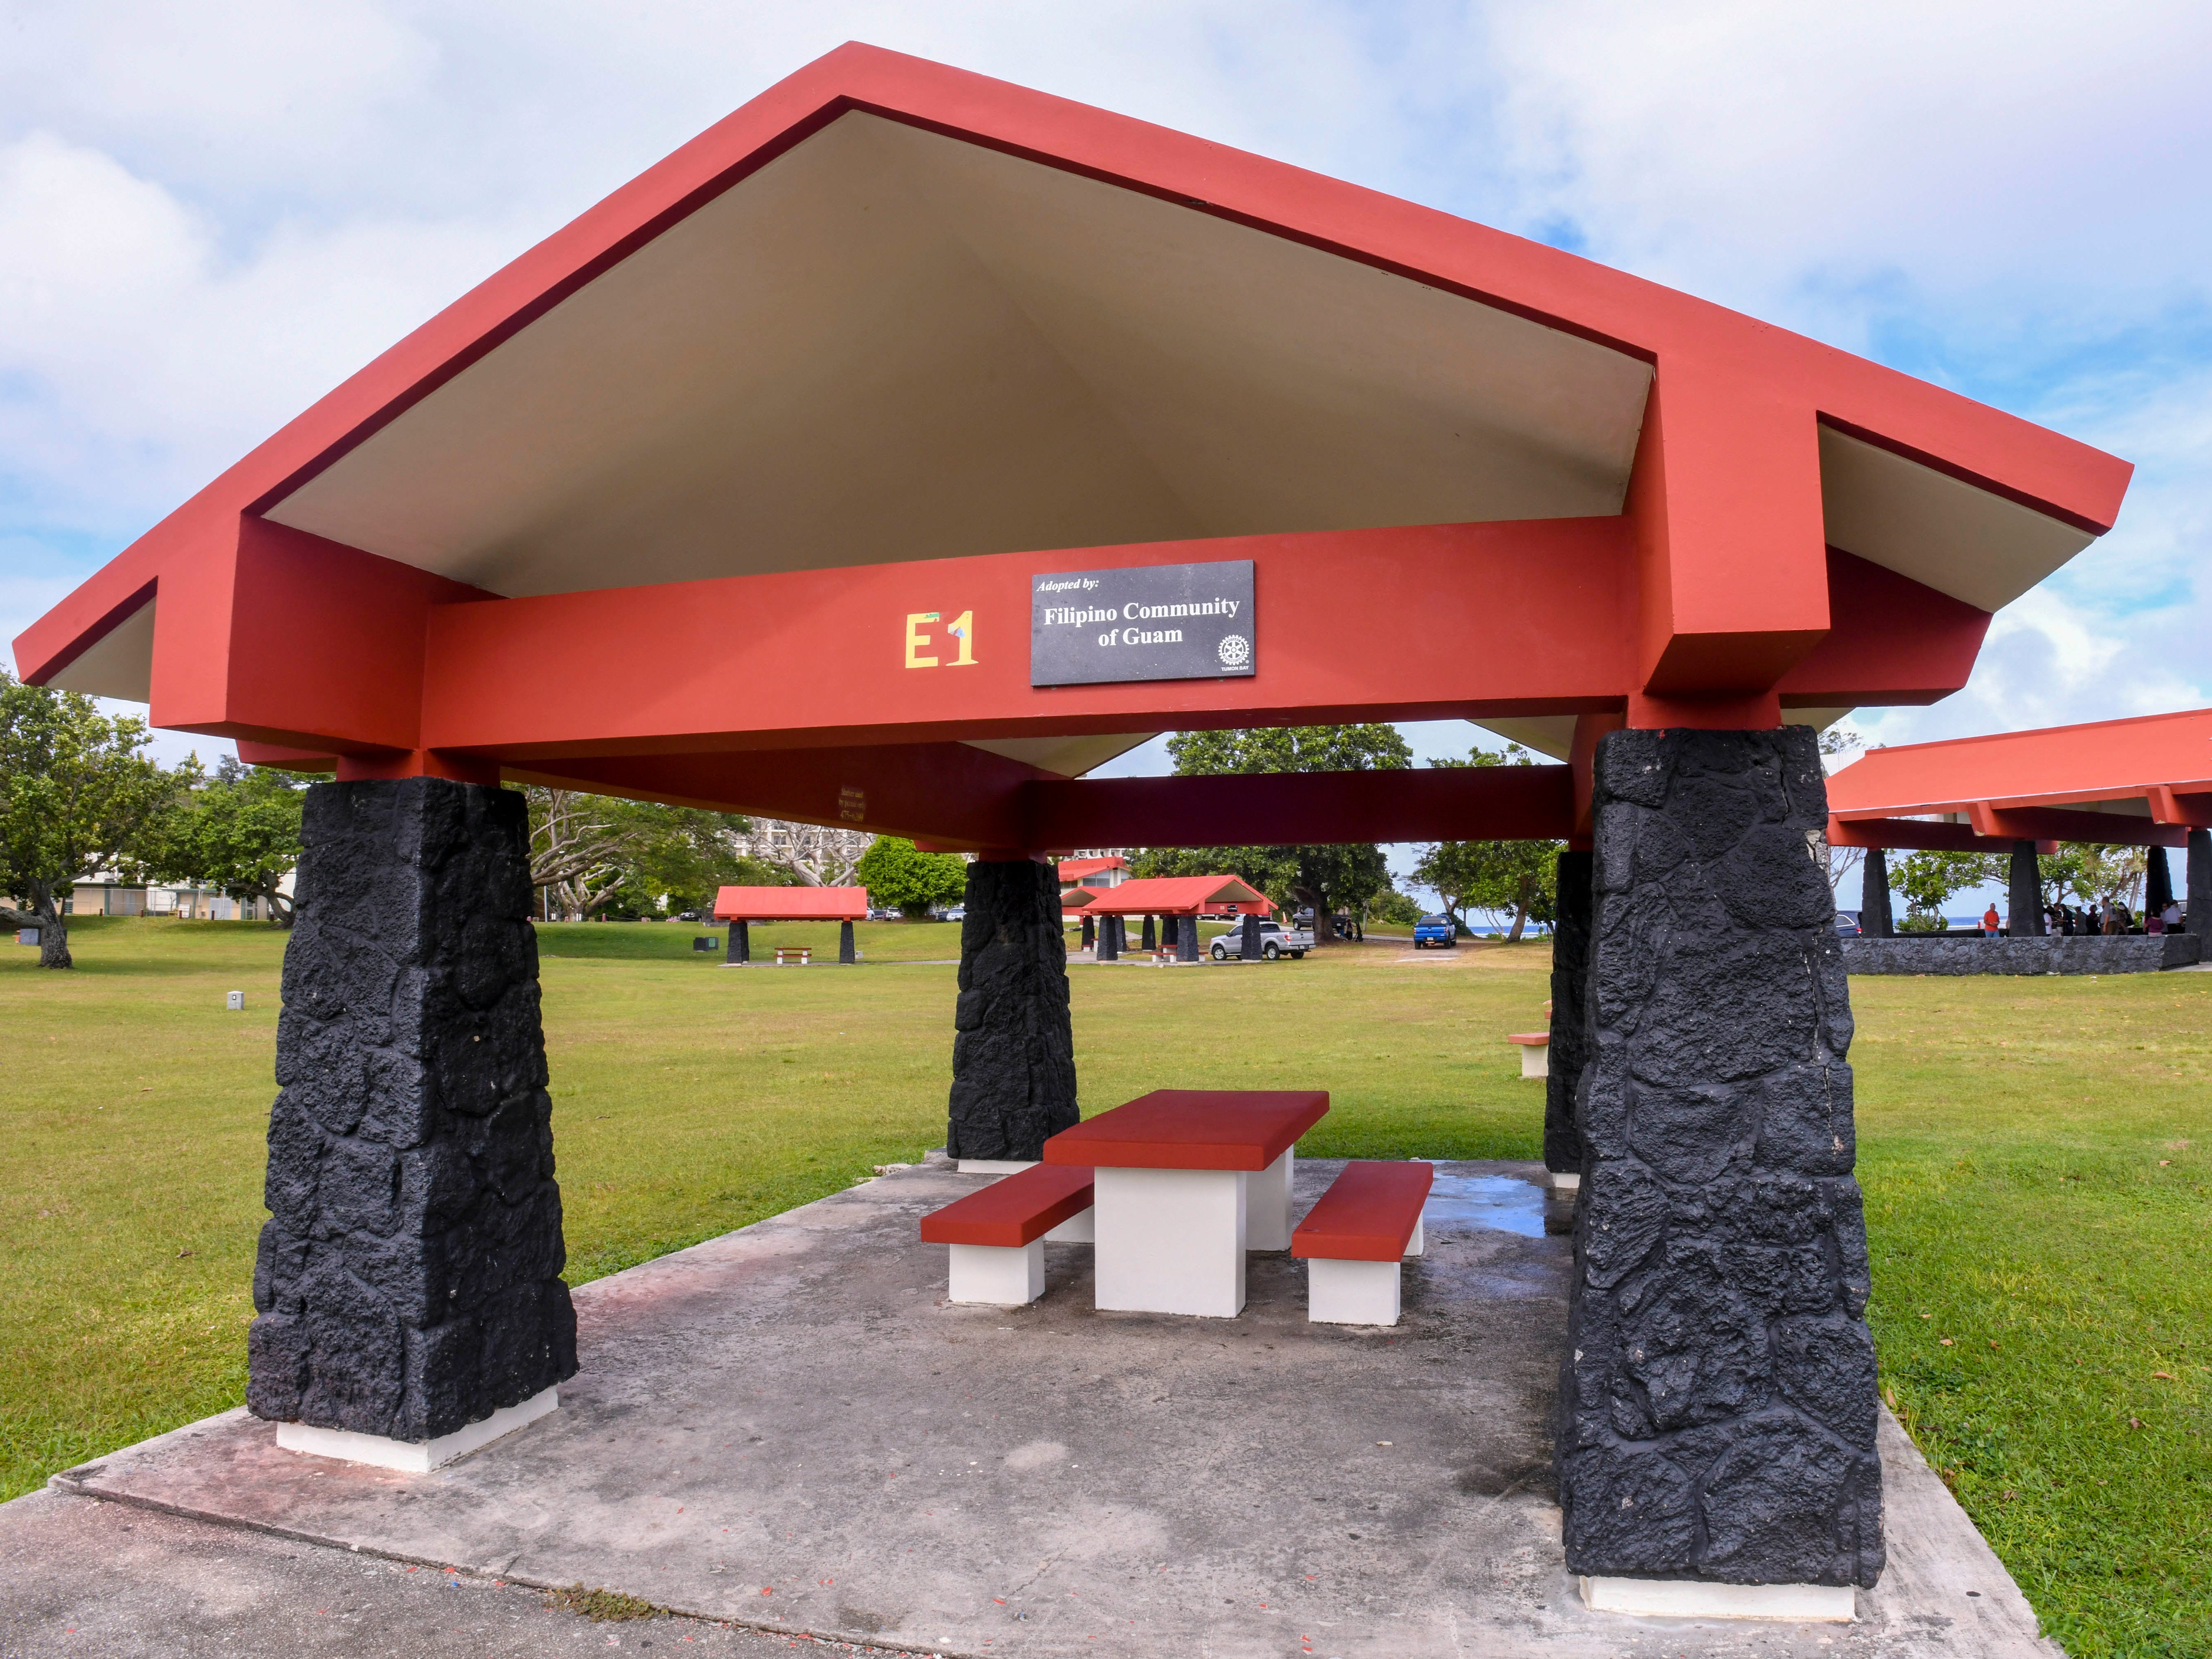 The Rotary Club of Tumon Bay, through its Adopt-a-Shelter project and the assistance of its members and a collection of local businesses, repaired and renovated dilapidated pavilions at Gov. Joseph Flores Memorial Park in Tumon, as seen after an unveiling ceremony on Friday, Jan. 18, 2019.